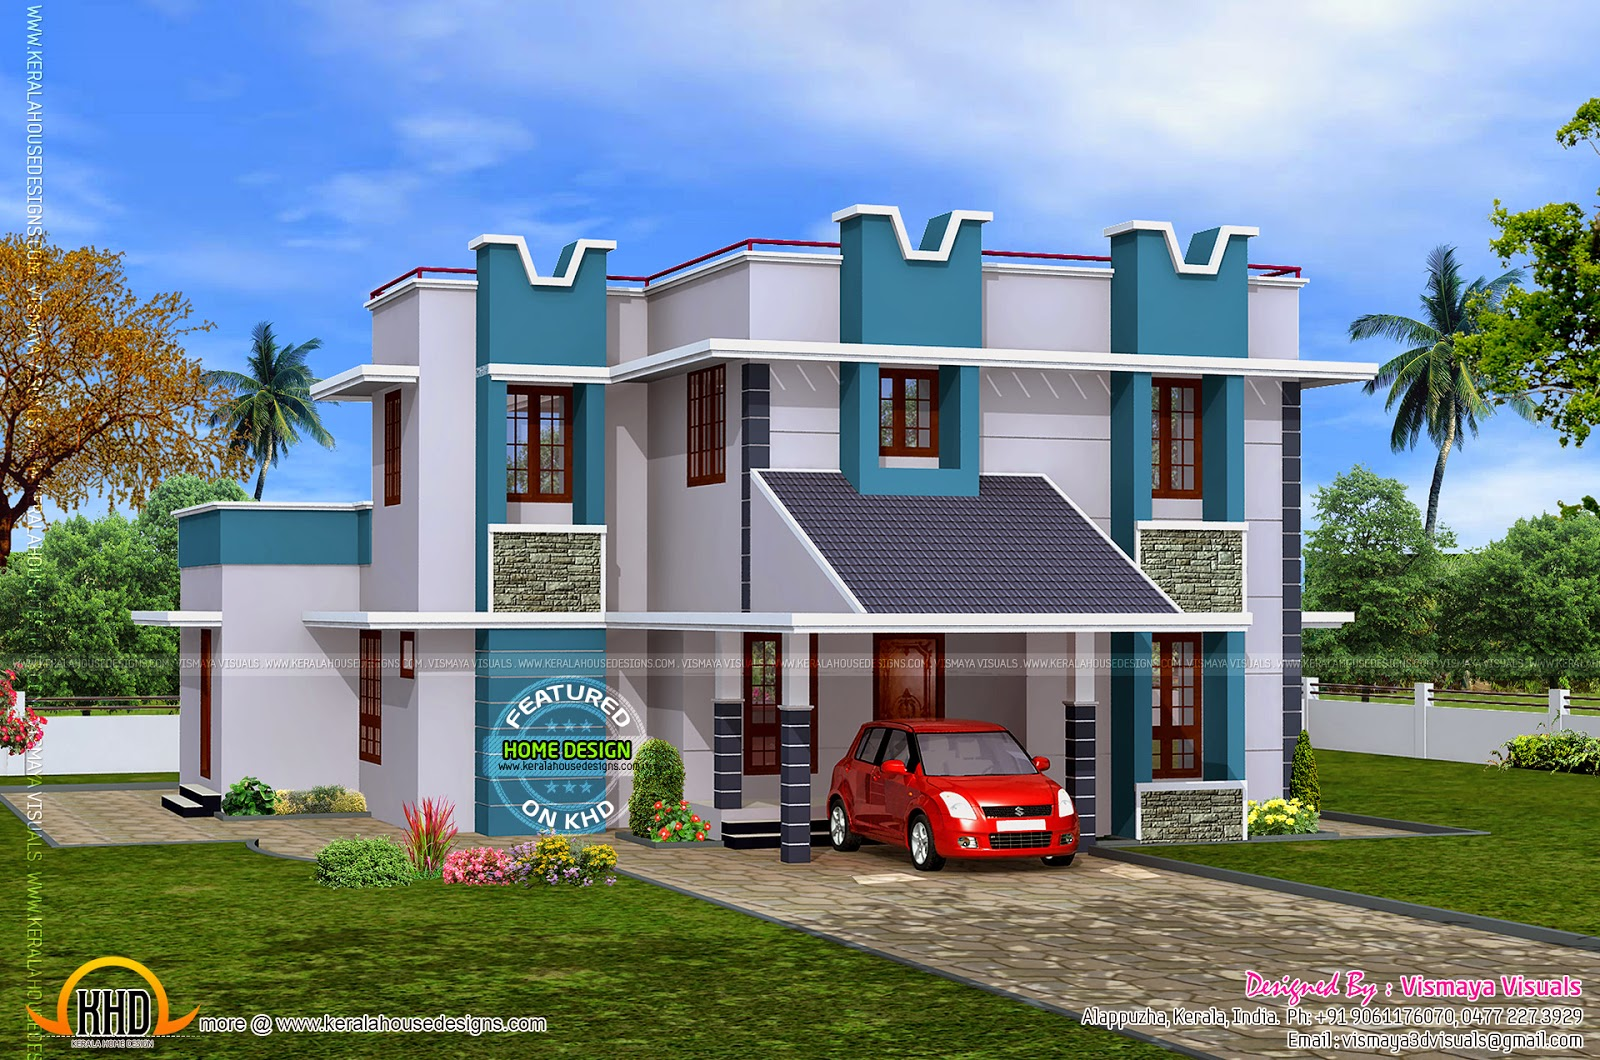 1926 sq feet clean house design kerala home design and for Normal house design in indian